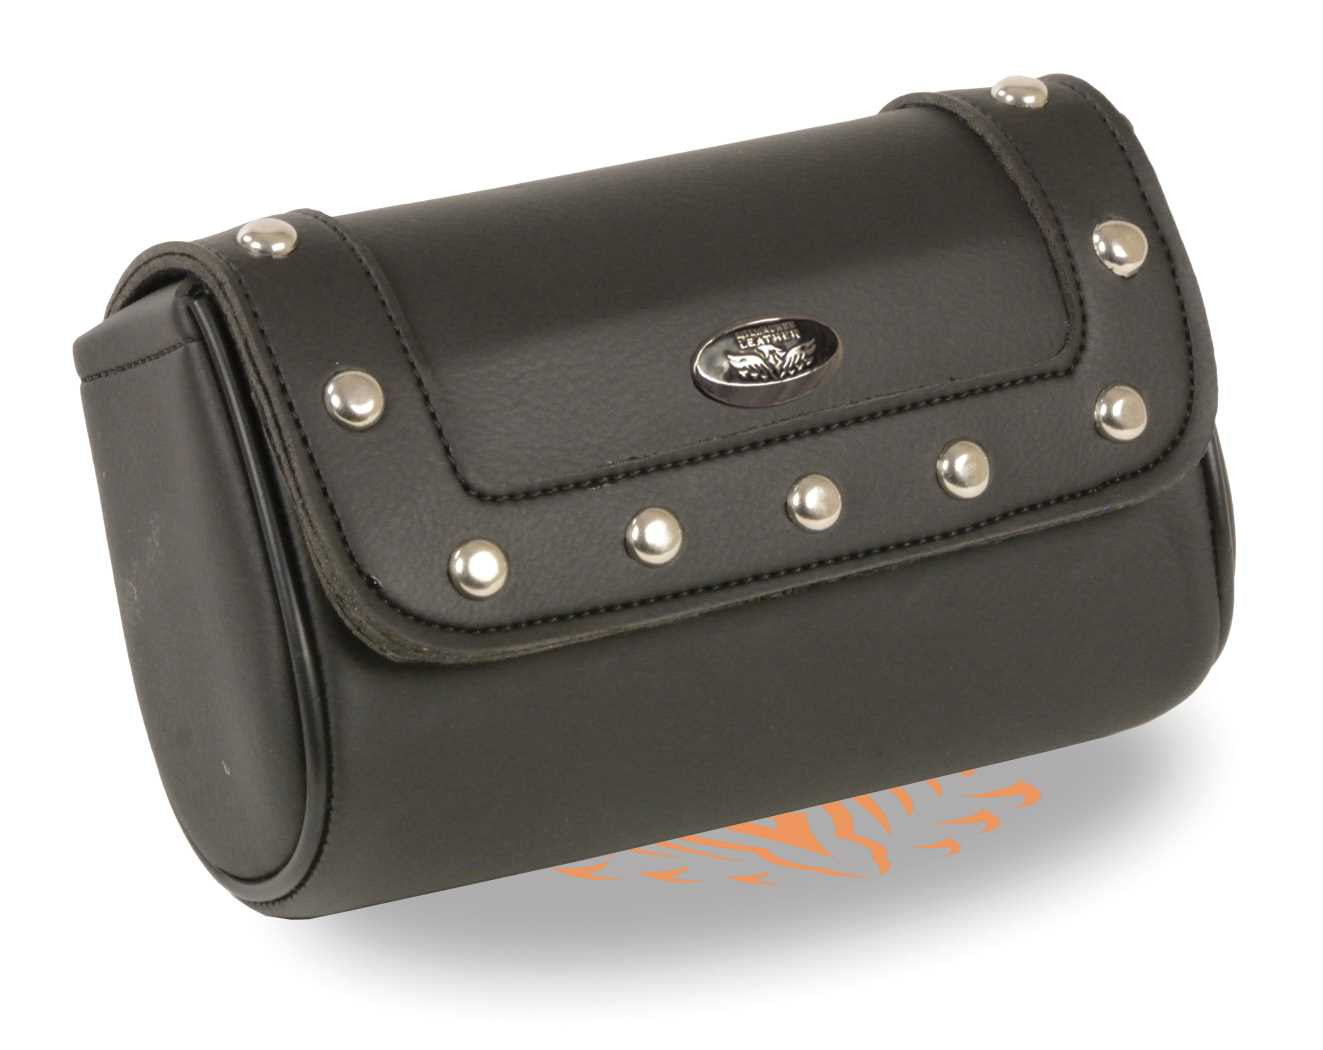 PVC SMALL RIVETED TOOL BAG W/ VELCRO CLOSURE